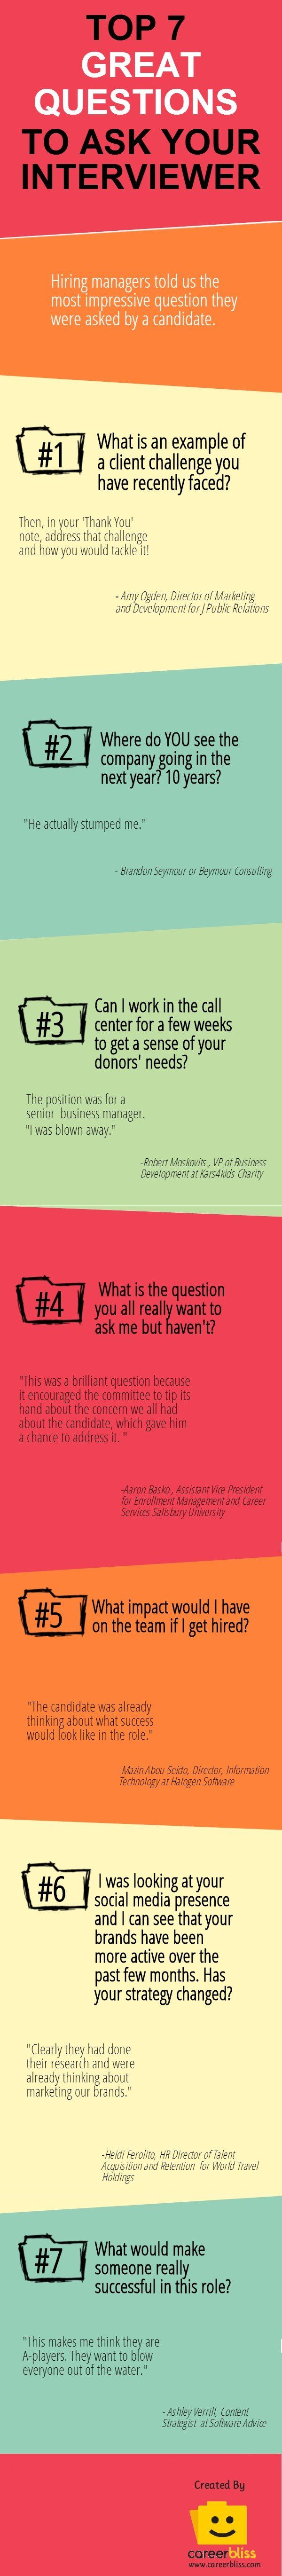 Great questions to ask your interviewer